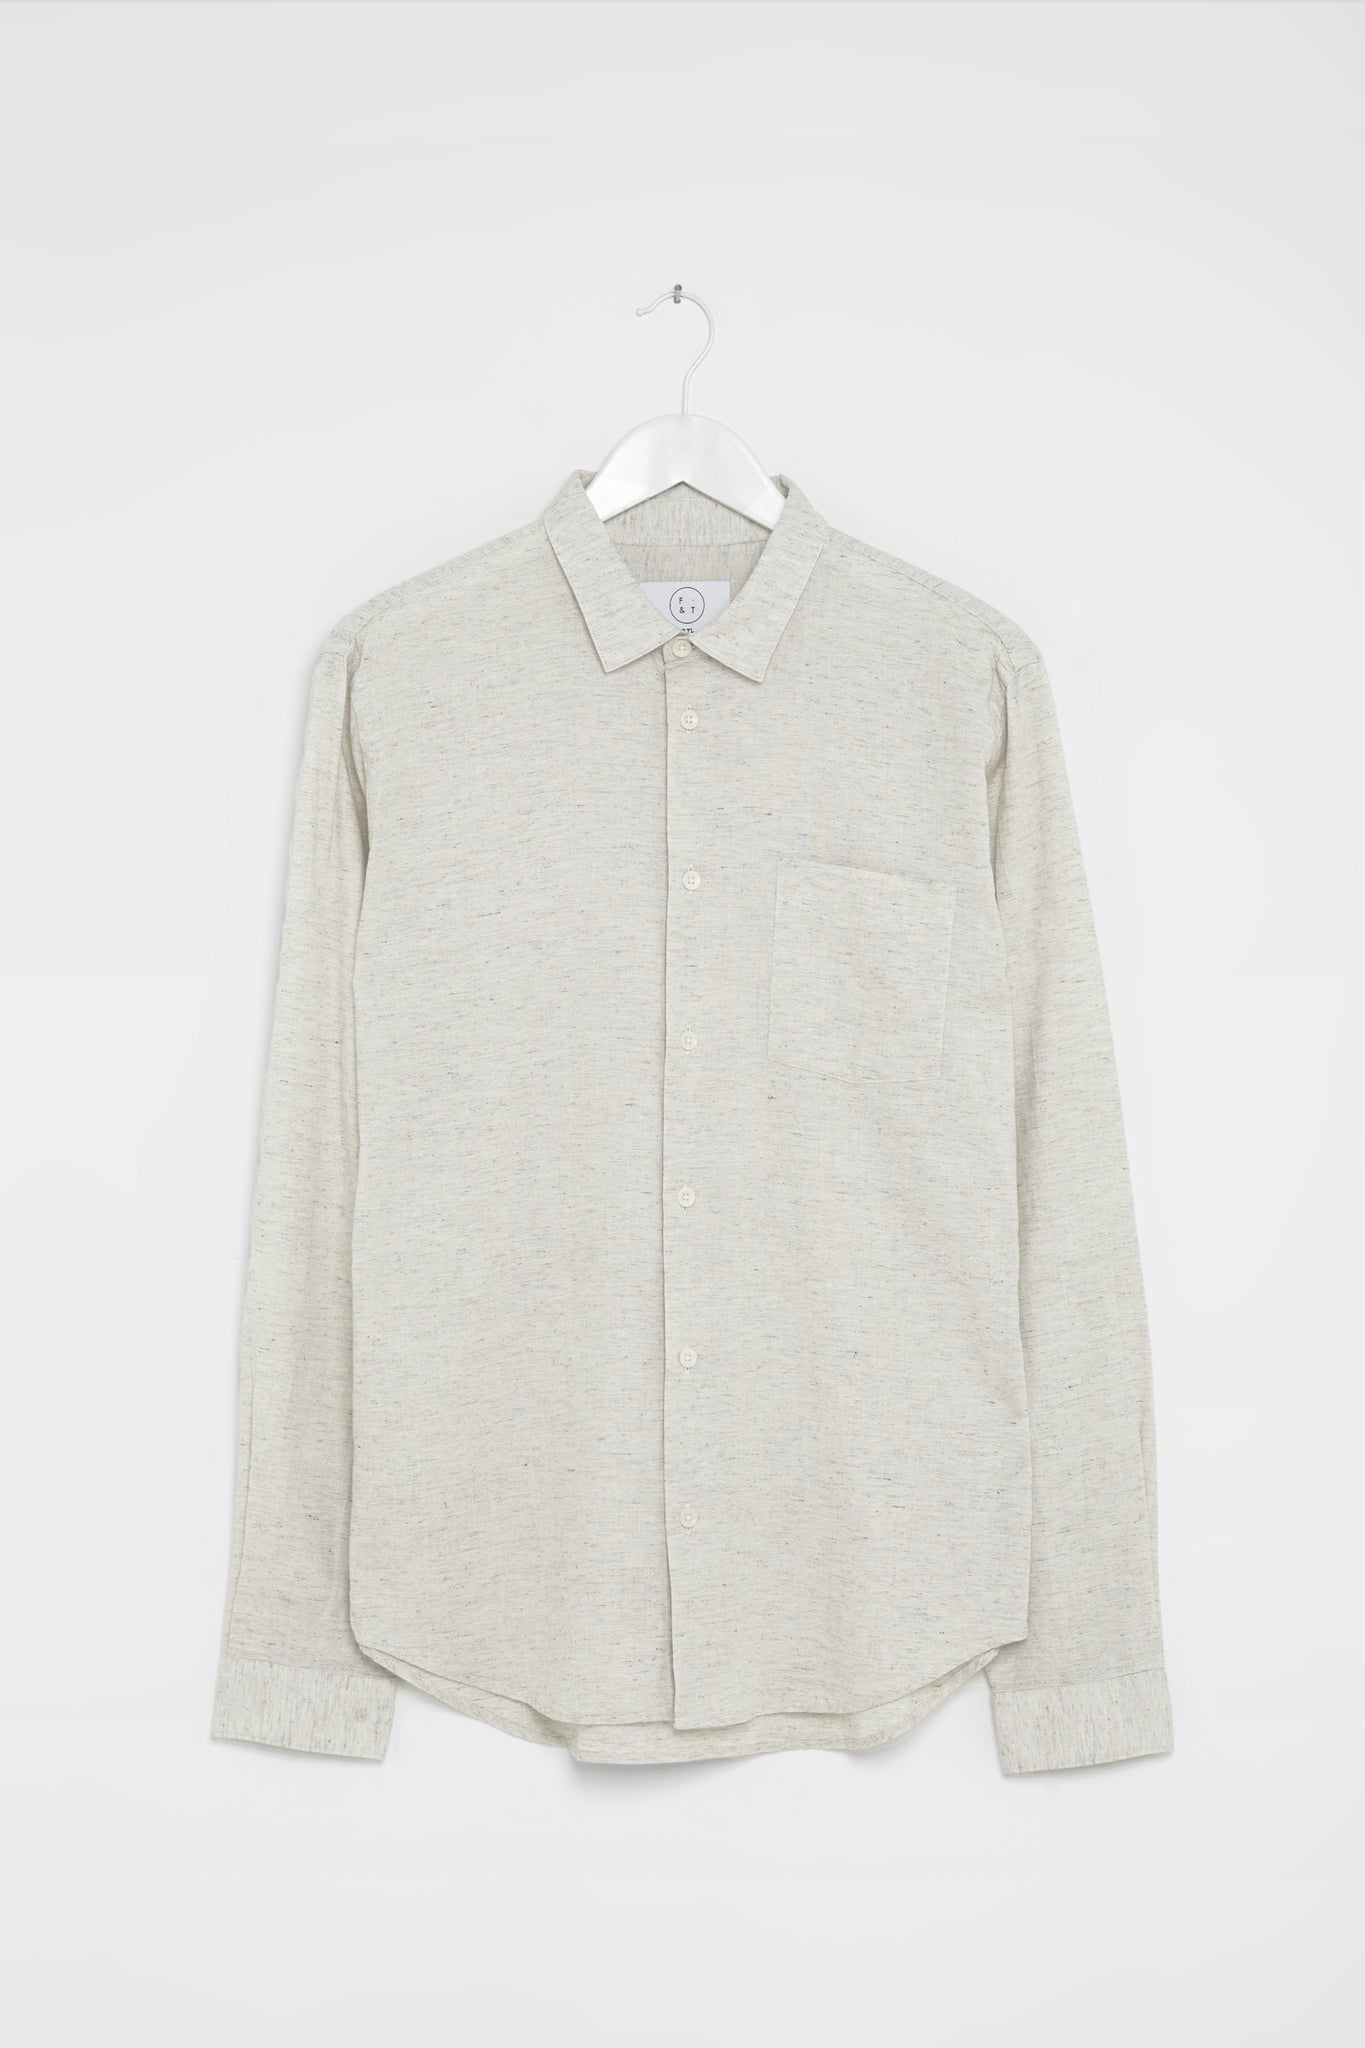 Form & Thread Essential Shirt - Ecru/Black Melange